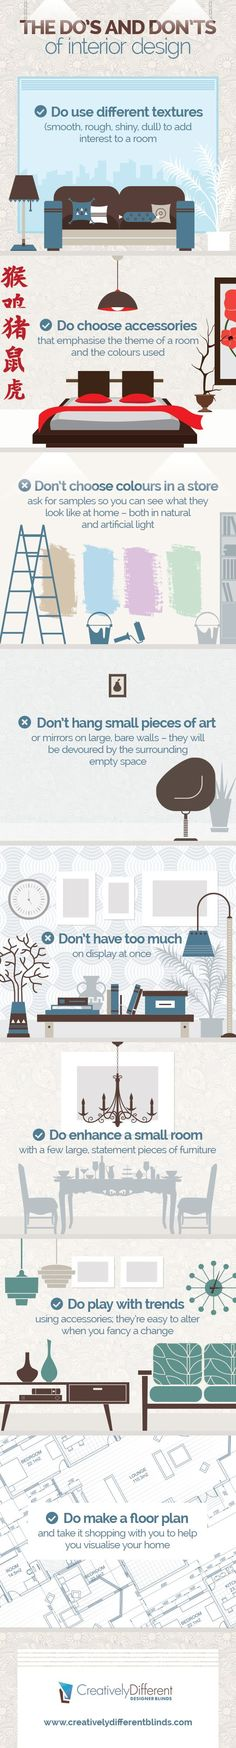 8 Essential Principles Of Good DIY Interior Design. Click the image to read the full post!